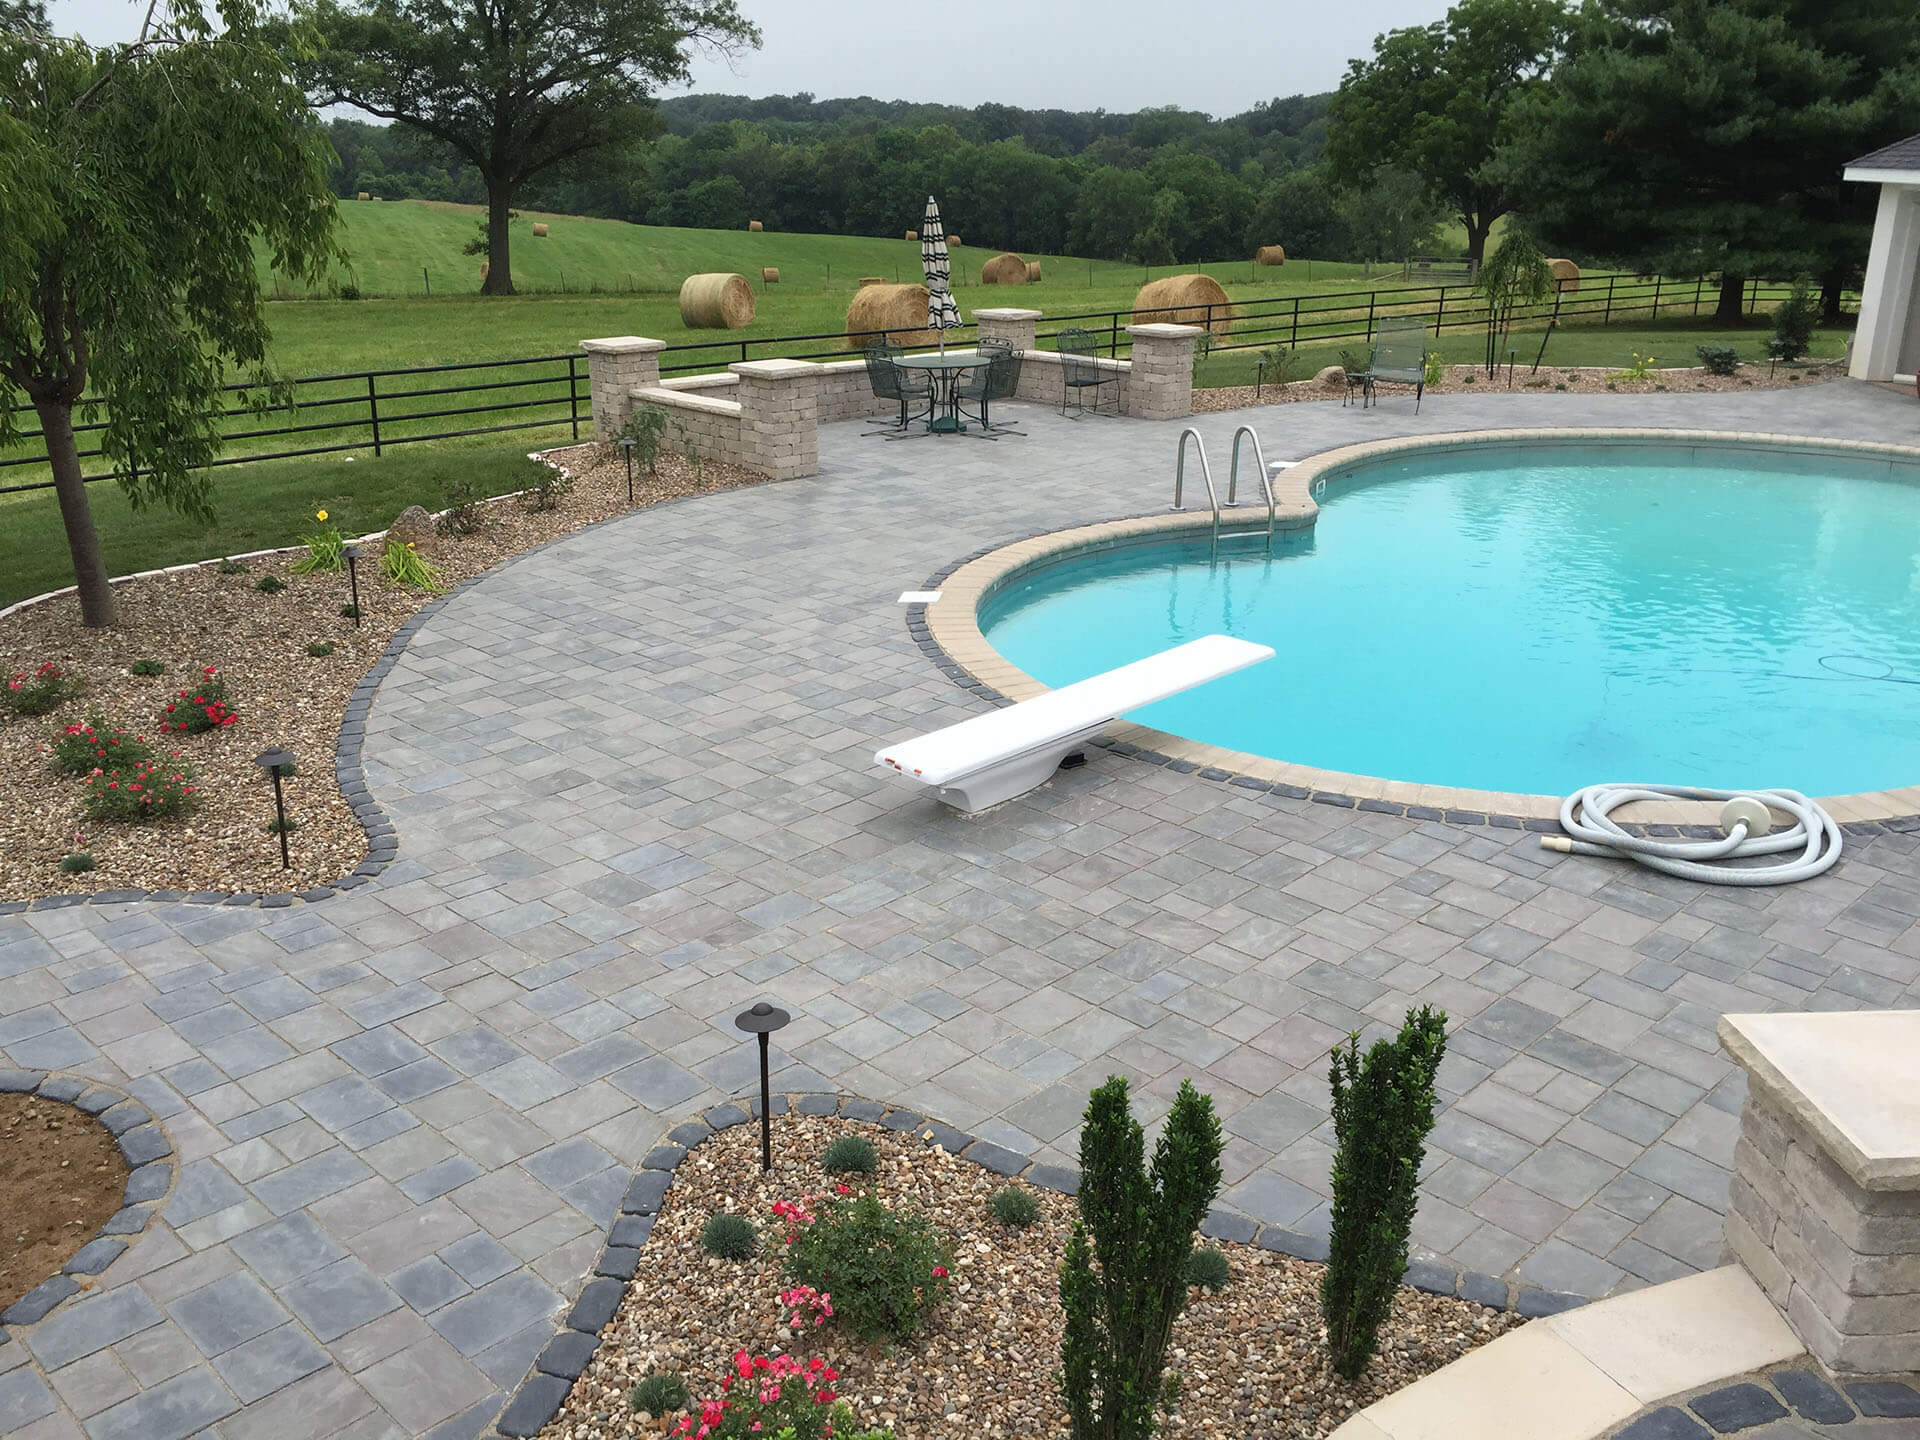 natural stone pool deck and garden features for a home in Jackson, MO Project